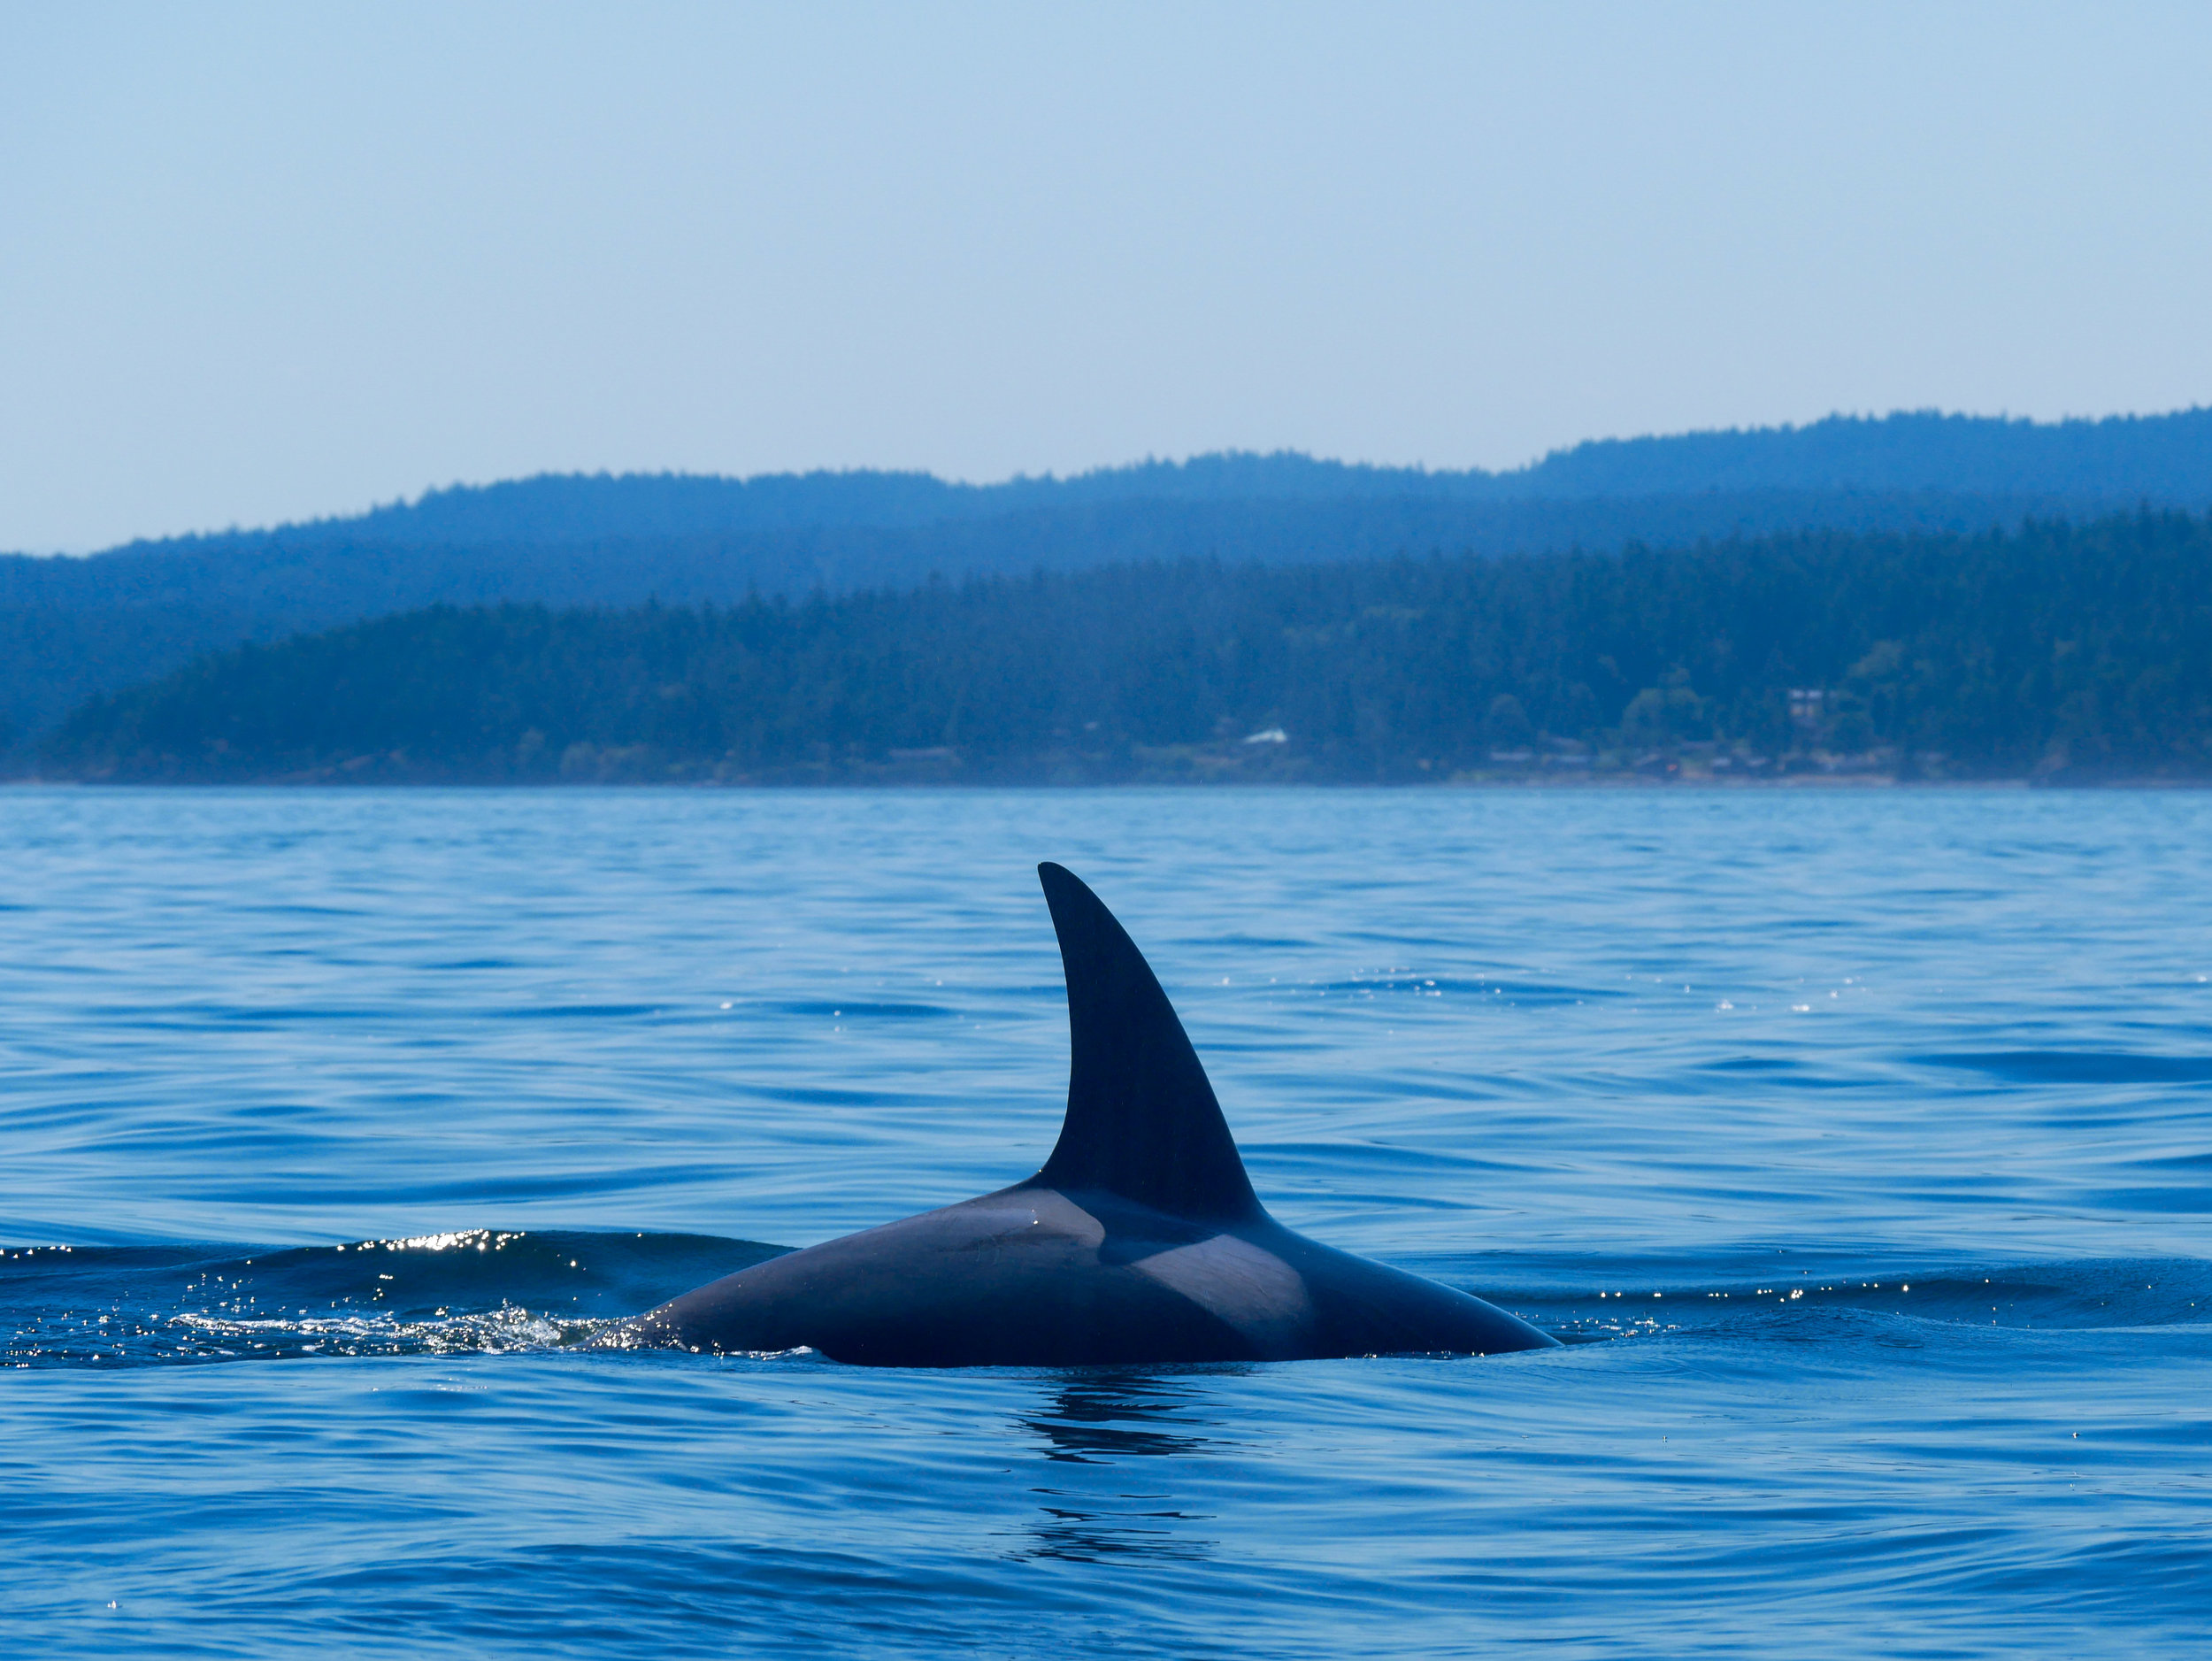 Breathtaking shot of a surface with the San Juan Islands in the background. Photo by Val Watson.